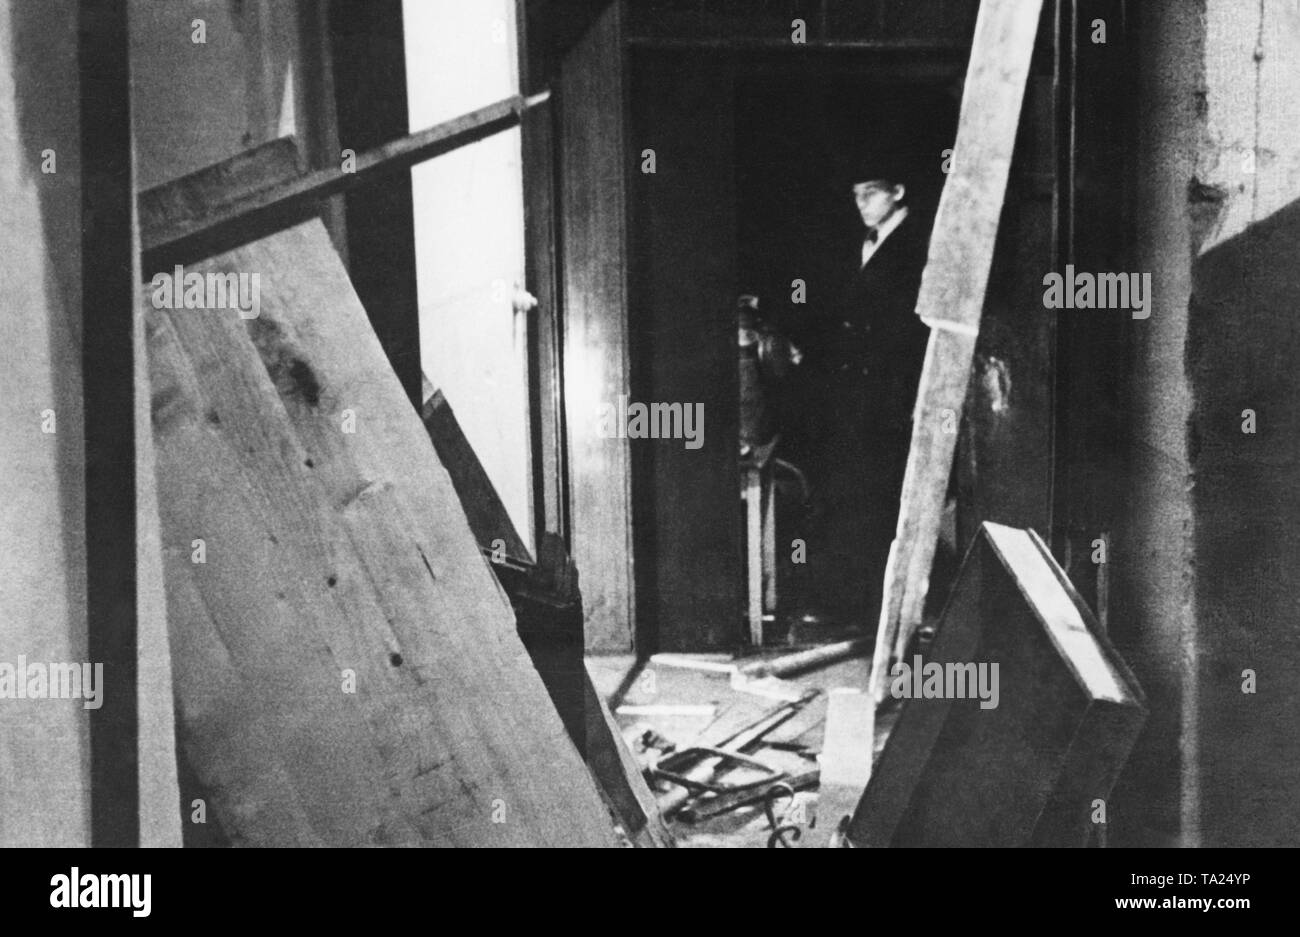 Demolition of the Institute for Slavic Languages ??at the German Charles-Ferdinand University in Prague. German minister of the parliament of Czechoslovakia Franz Spina is the chair holder. Students of the German Charles-Ferdinand University and the Charles University in Prague argue about medieval insignia. Undated photo, around 1934. - Stock Image